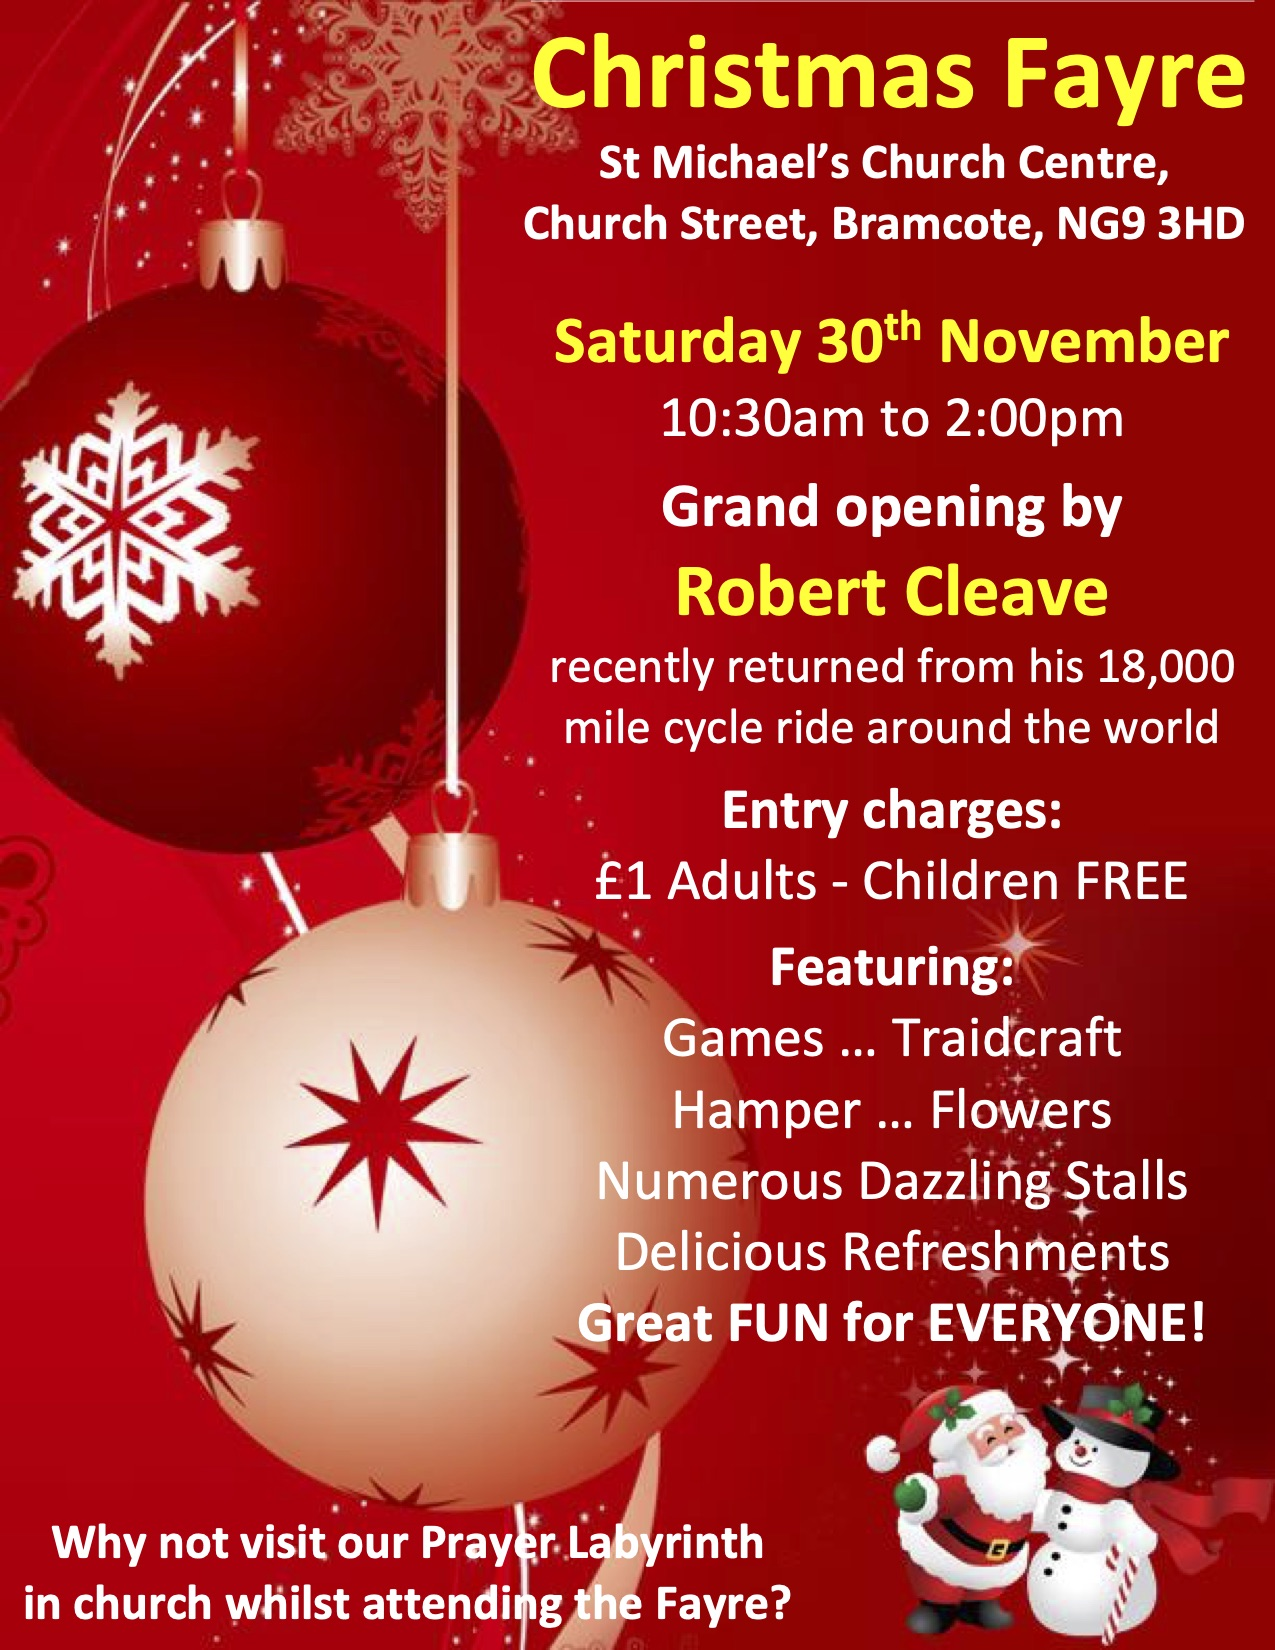 Christmas Fayre event.